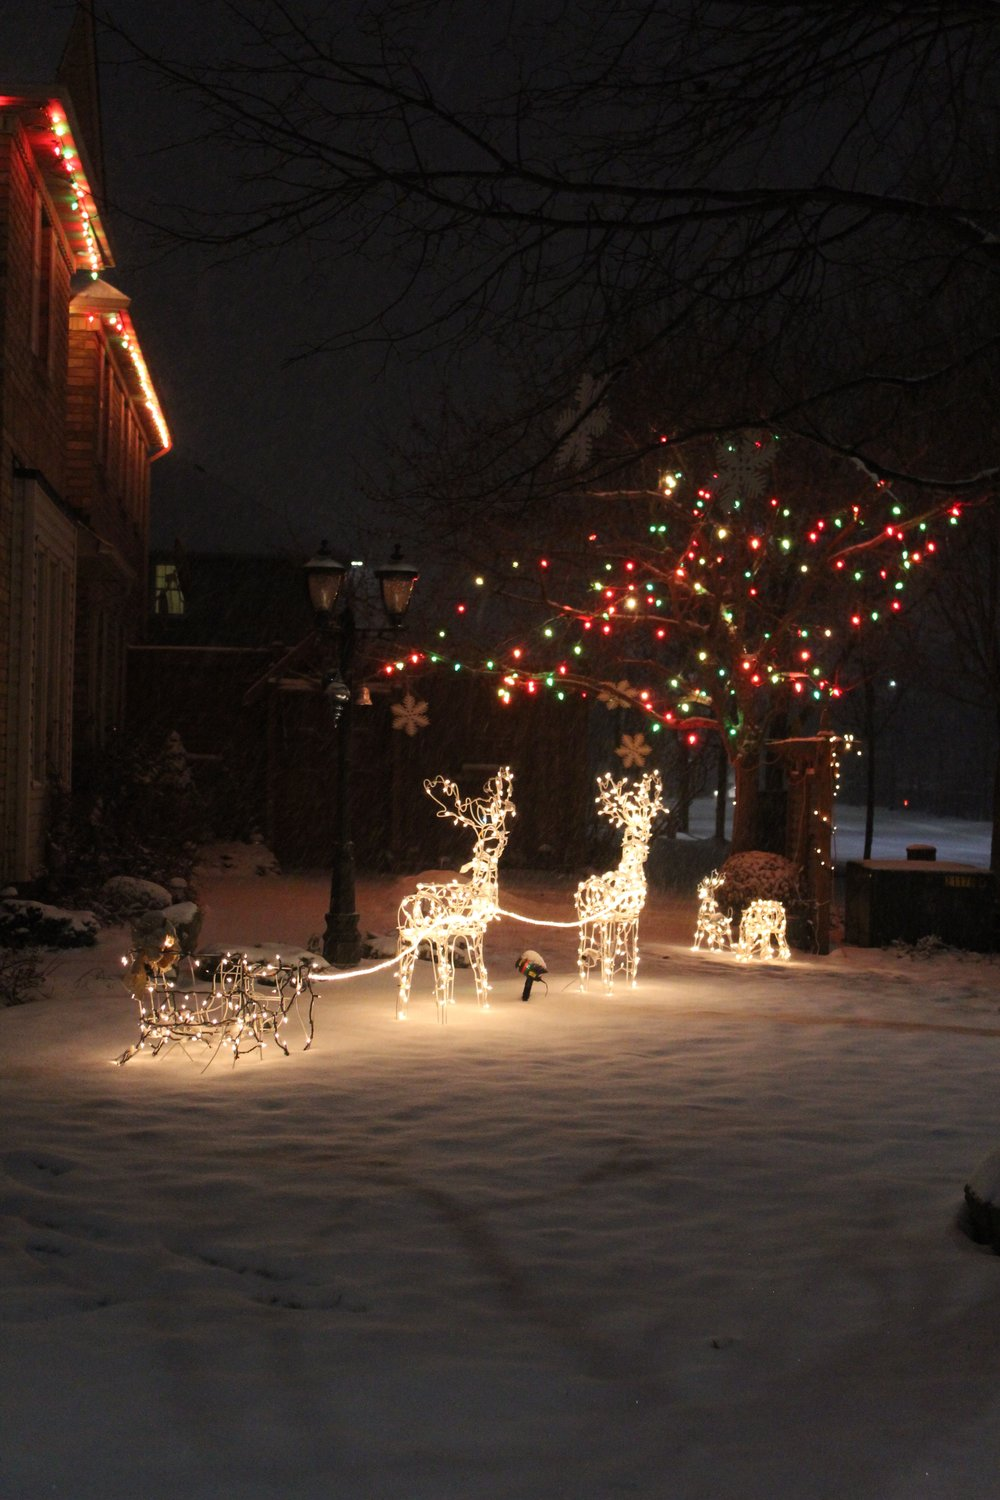 Front door christmas lights - Location Right Outside Your Front Door The Weather Outside May Be Frightful But The Sights Are So Delightful So Bundle Up And Hit The Streets Of Your